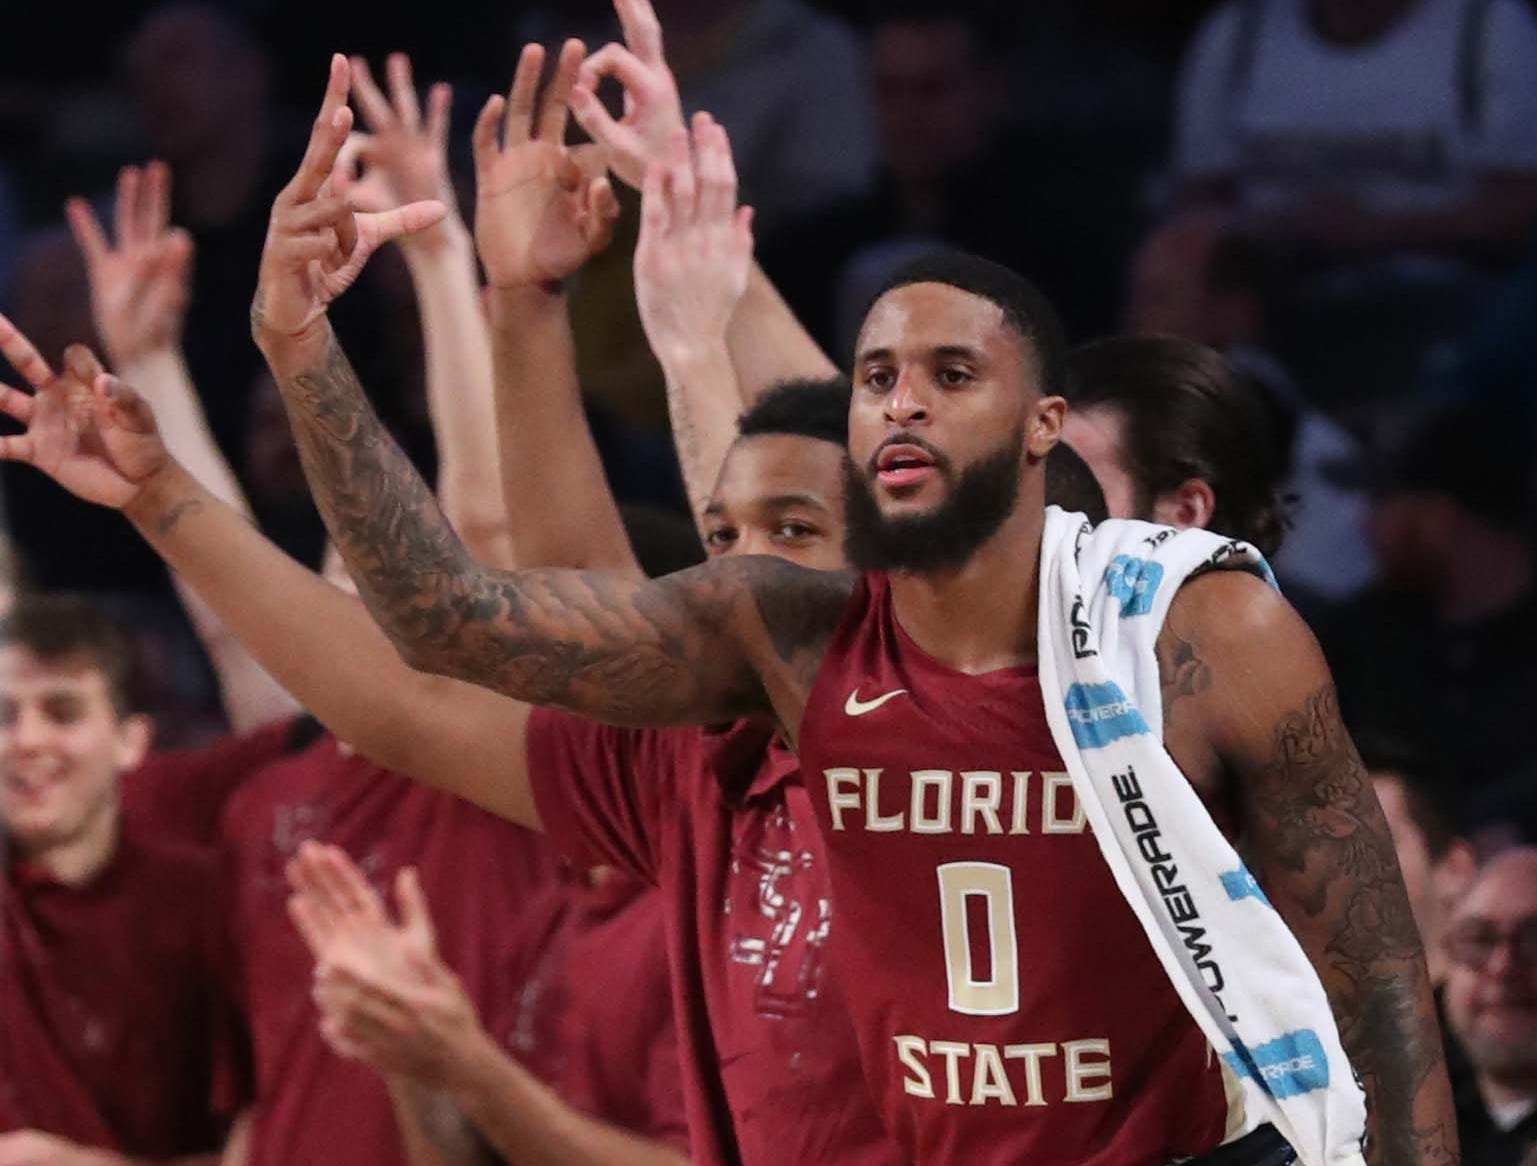 Feb 16, 2019; Atlanta, GA, USA; Florida State Seminoles forward Phil Cofer (0) celebrates a basket by a teammate on the bench in the first half against the Georgia Tech Yellow Jackets at McCamish Pavilion. Mandatory Credit: Jason Getz-USA TODAY Sports